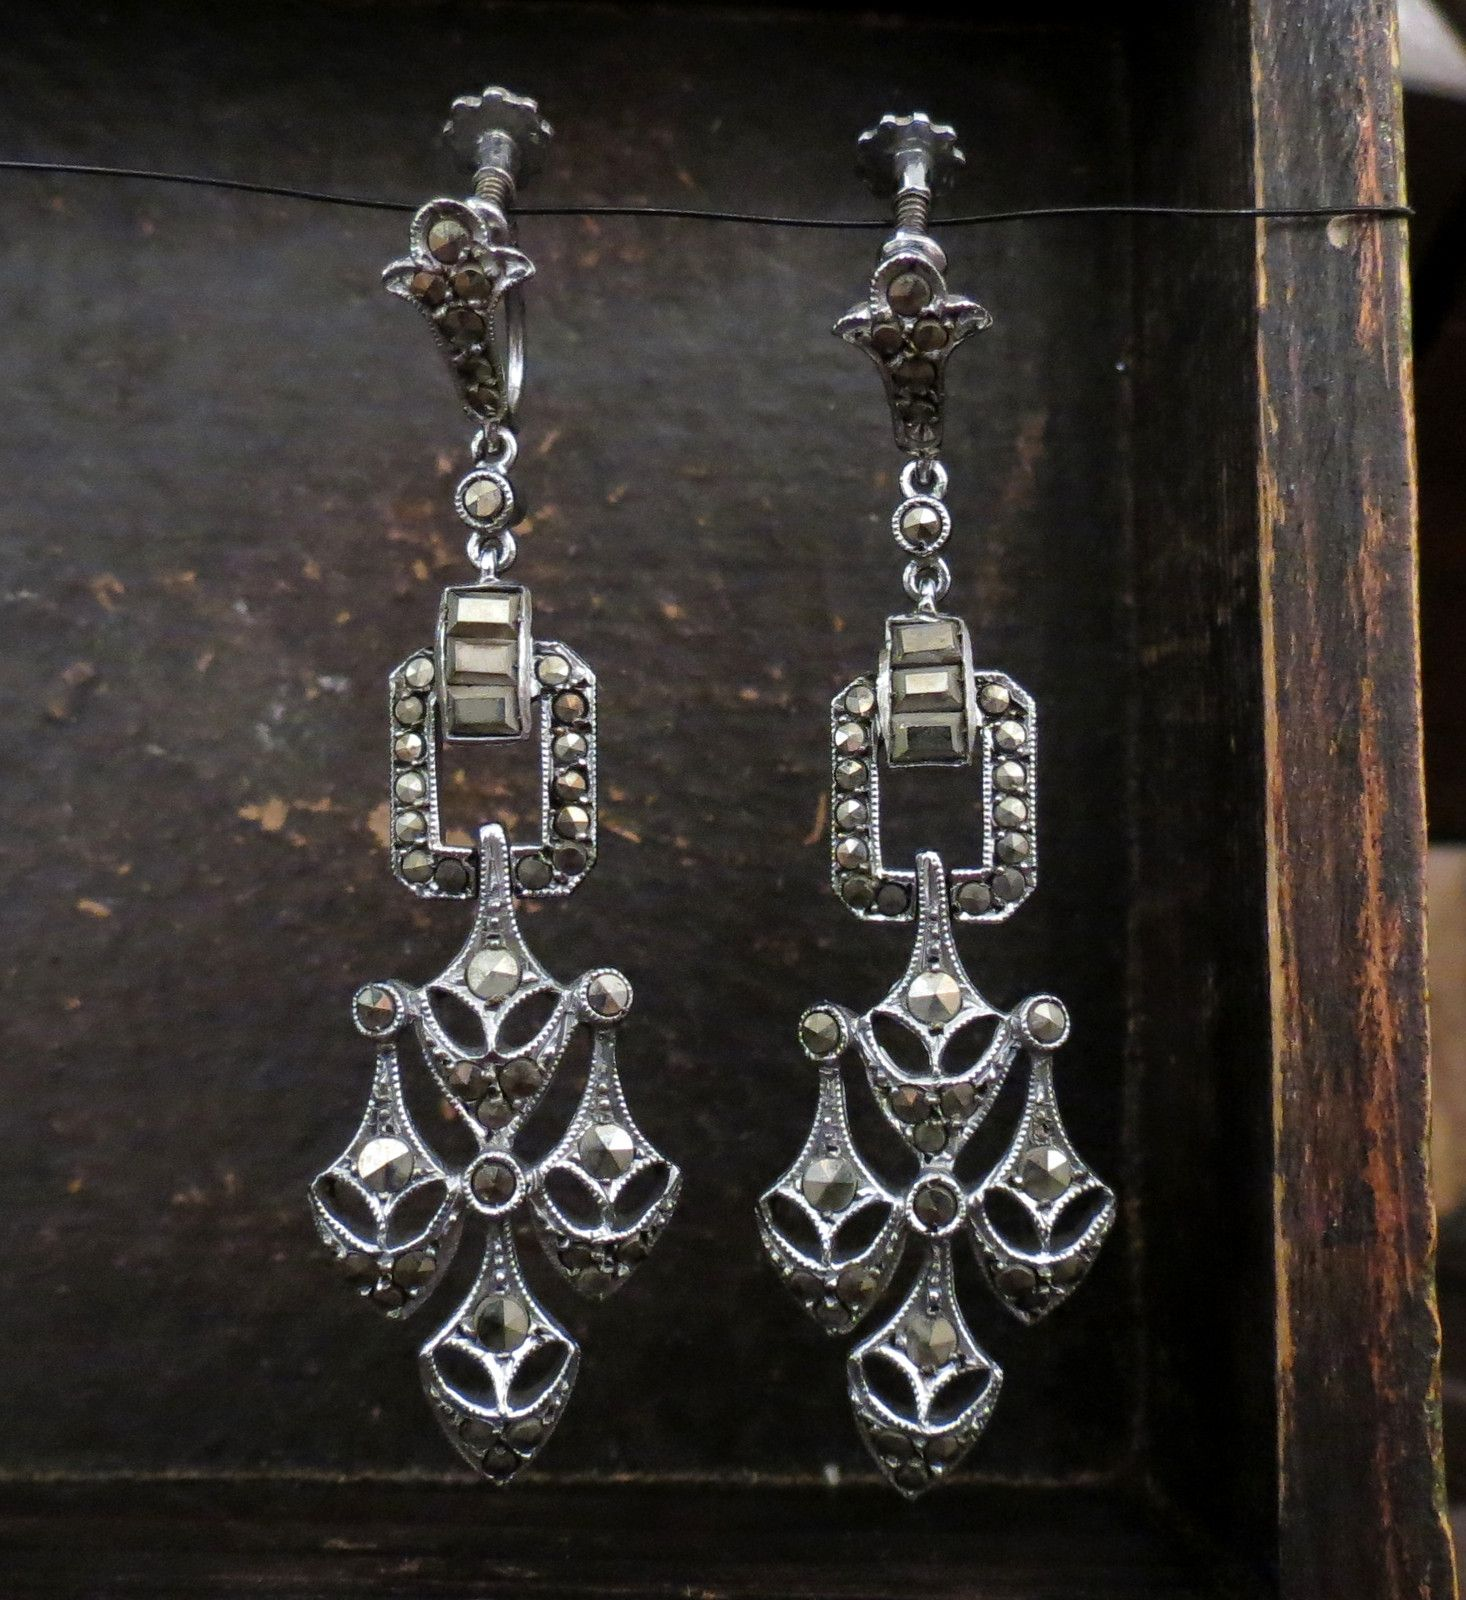 Art deco marcasite chandelier earrings sterling silver c 1930 art deco marcasite chandelier earrings sterling silver c 1930 aloadofball Image collections